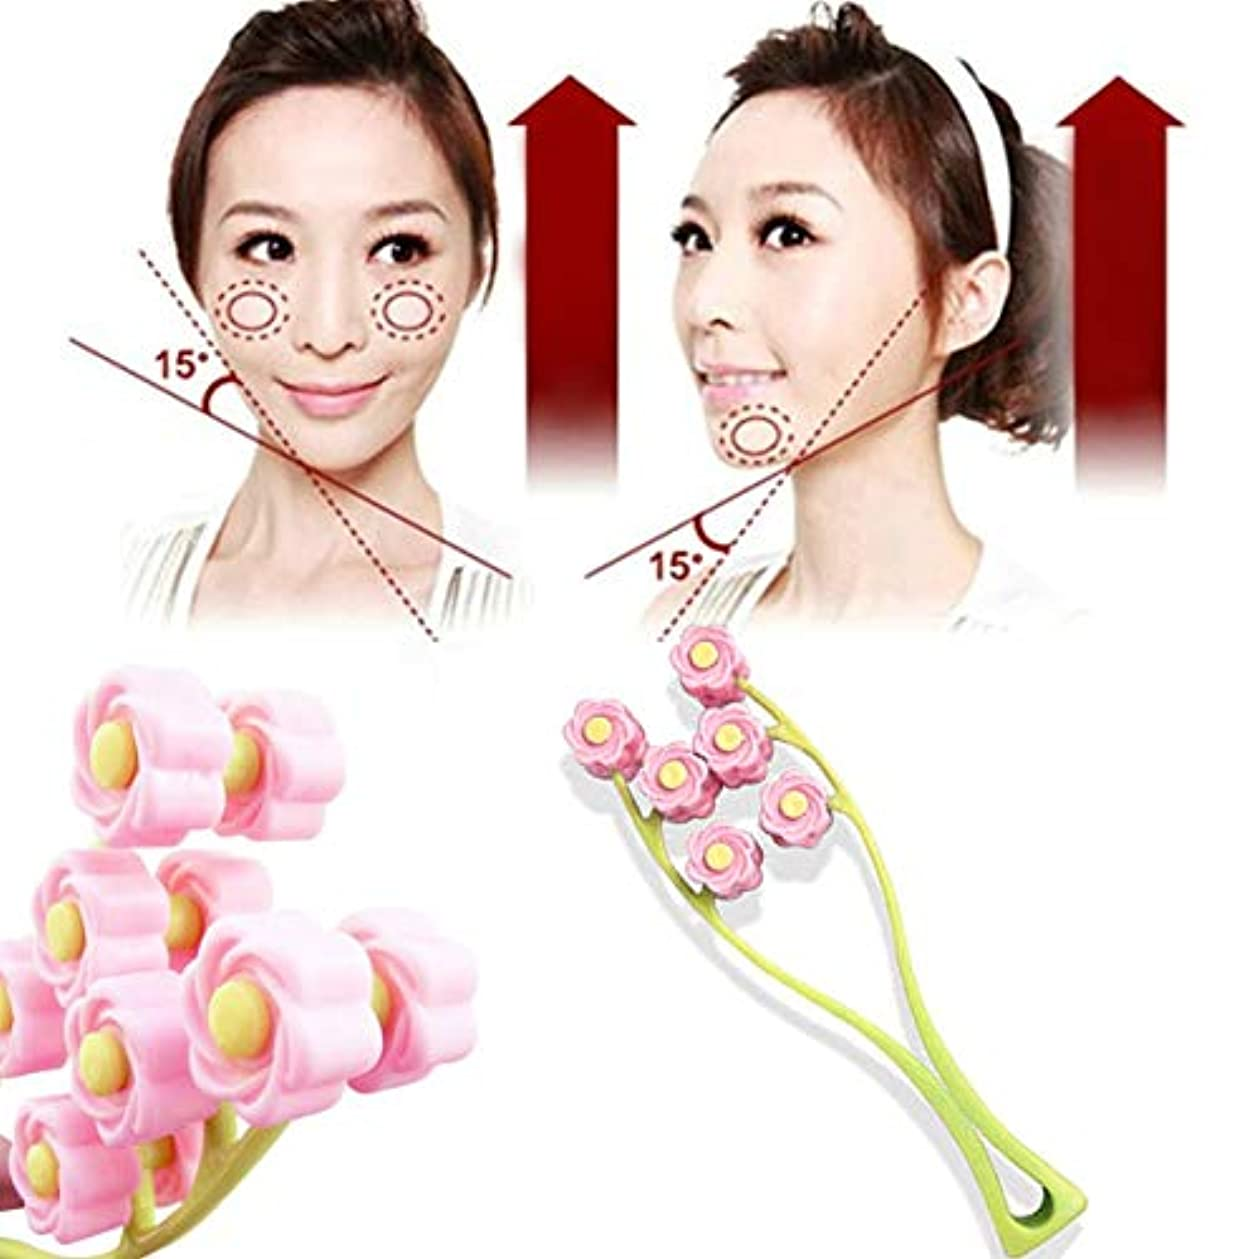 ぴかぴか賃金輪郭Elegant Flower Shape Portable Facial Massager Roller Anti-Wrinkle Face Lifter Slimming Face Shaper Relaxation...